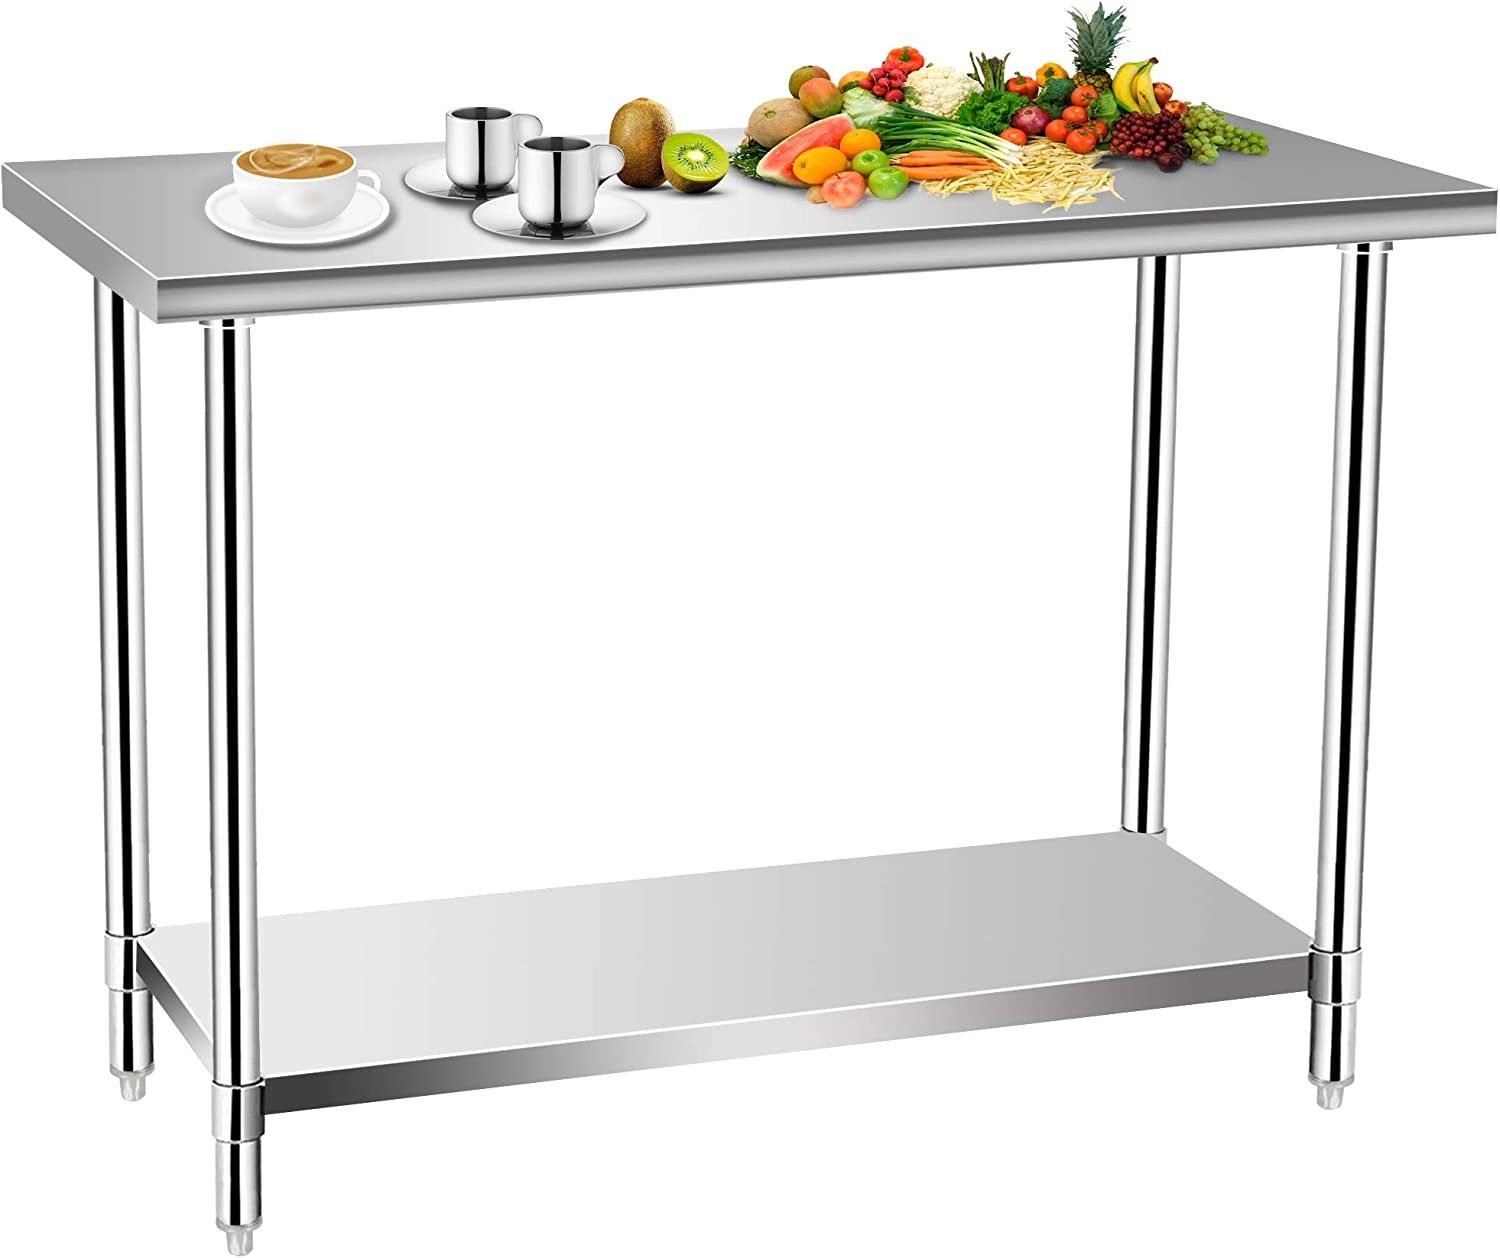 Commercial Kitchen Prep Work Table Sale special price Food Stainless Tulsa Mall KITMA Steel